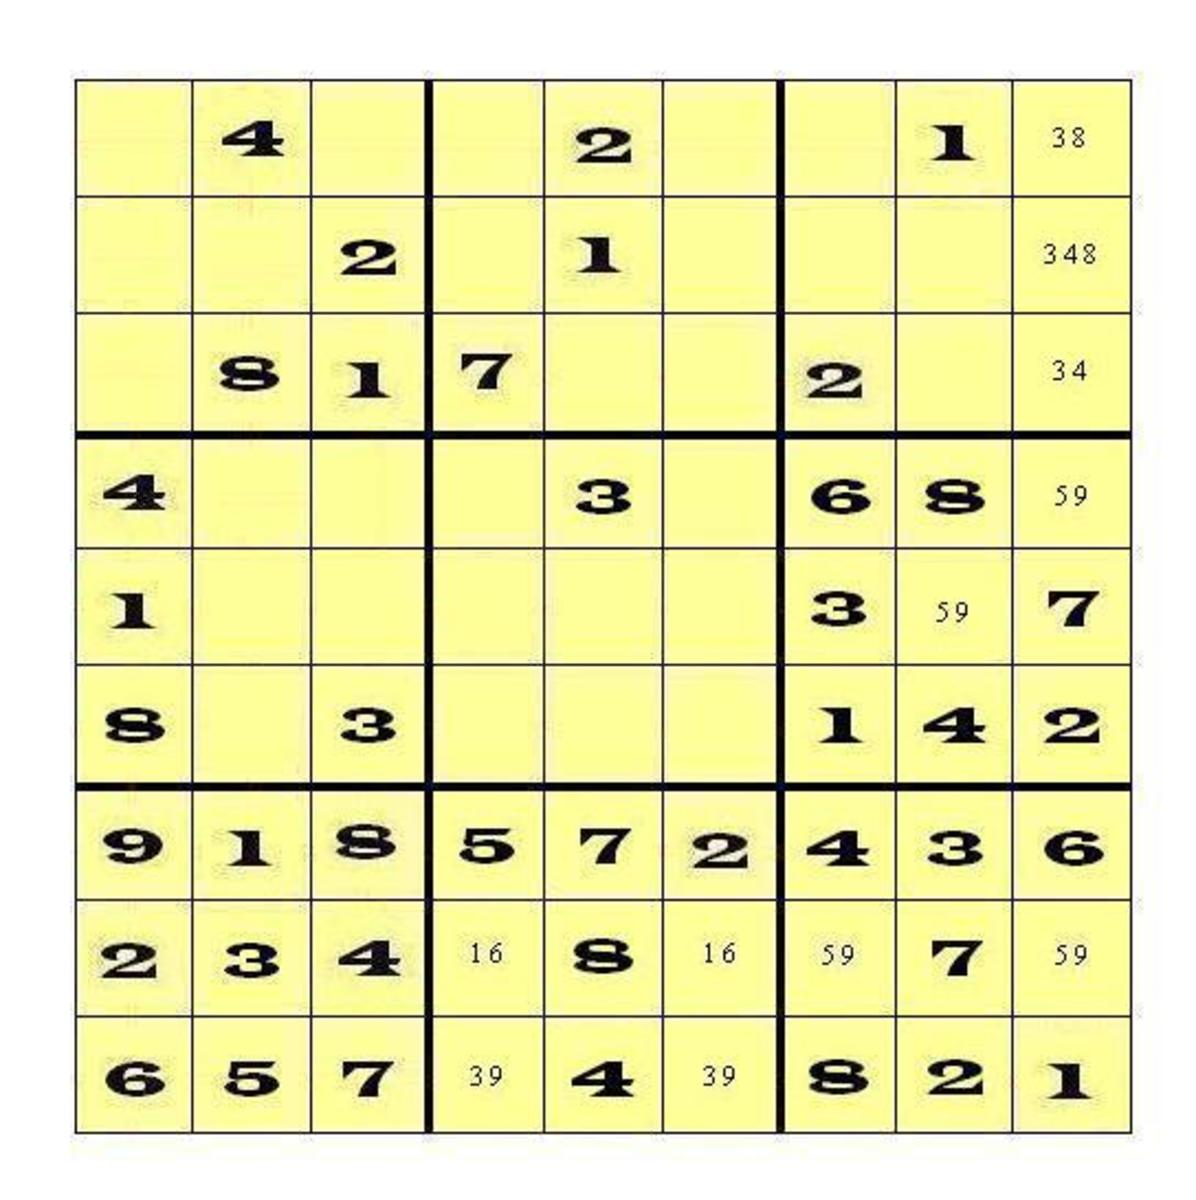 You could have found twins either in Row 8 of Block 9 or in Row 9 of Block 8.  In either case, the Twin pair would eliminate 9 from consideration in Row 8 of Block 8.